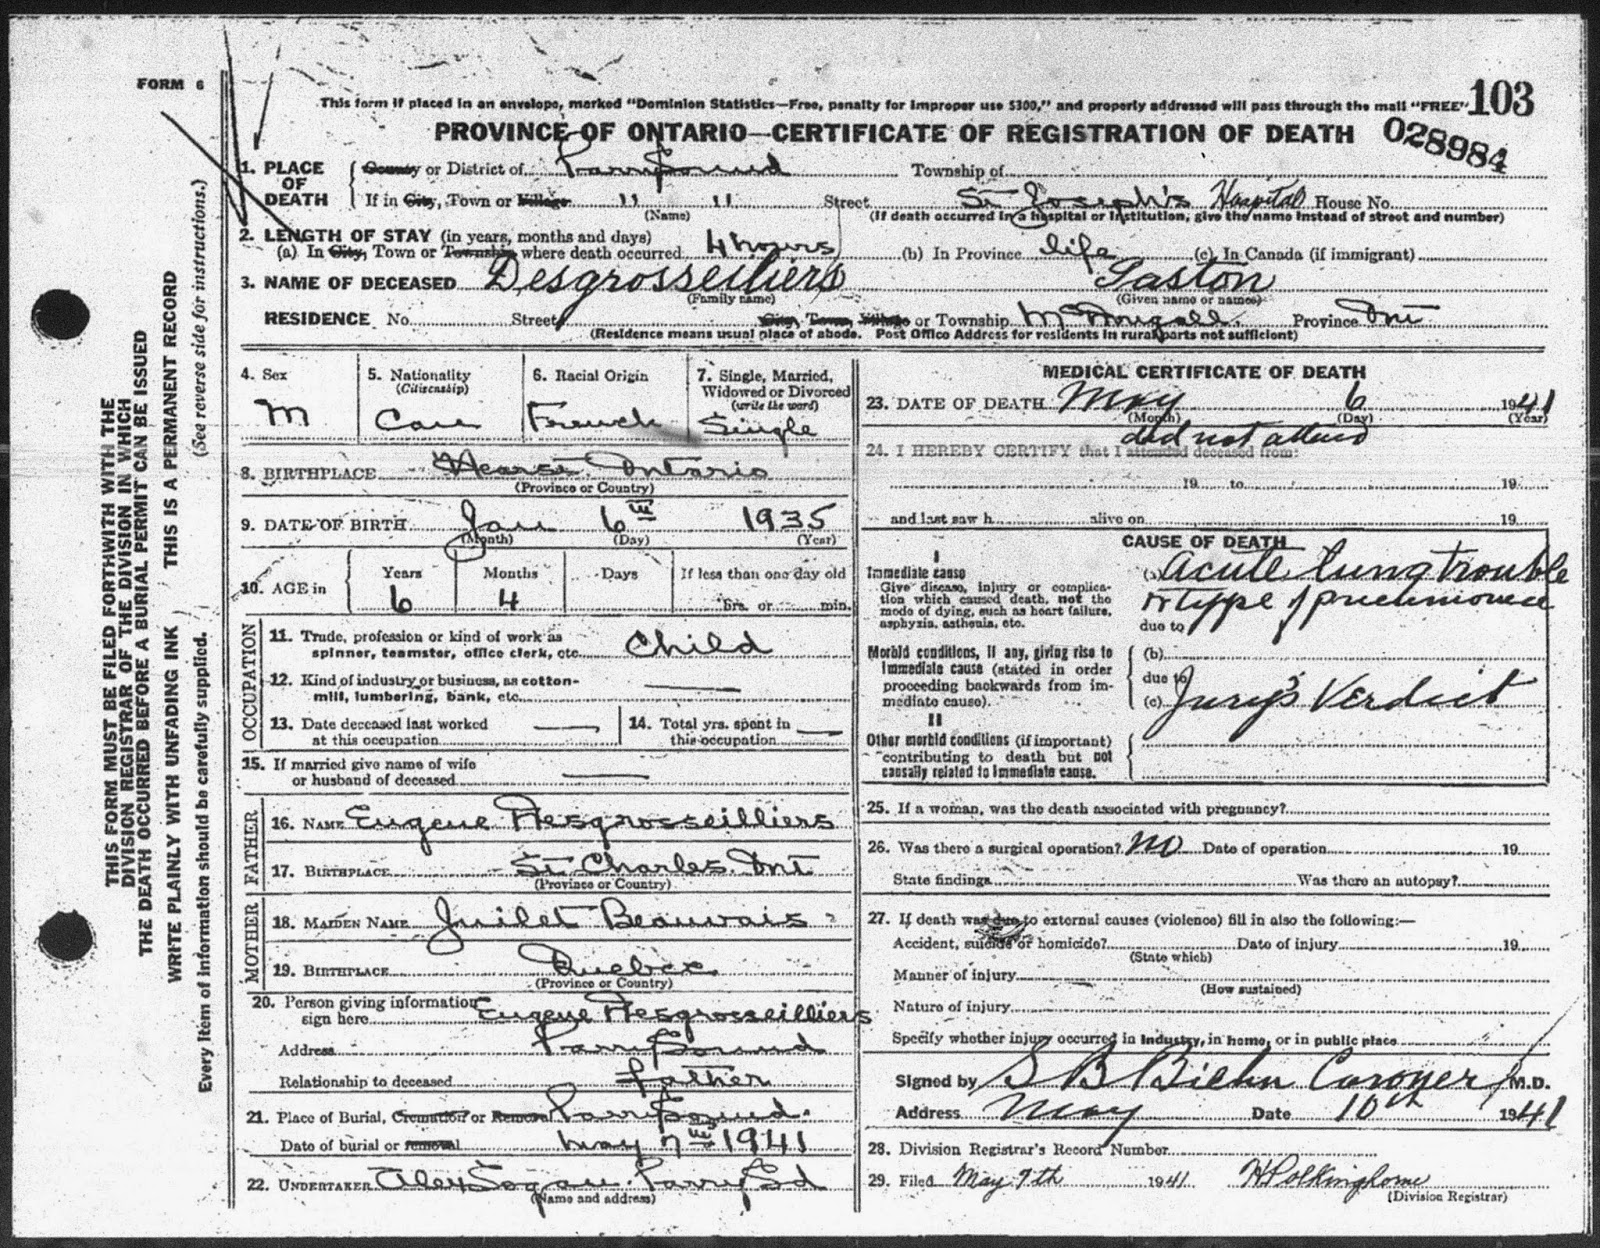 Death registration of Gaston Desgroseilliers